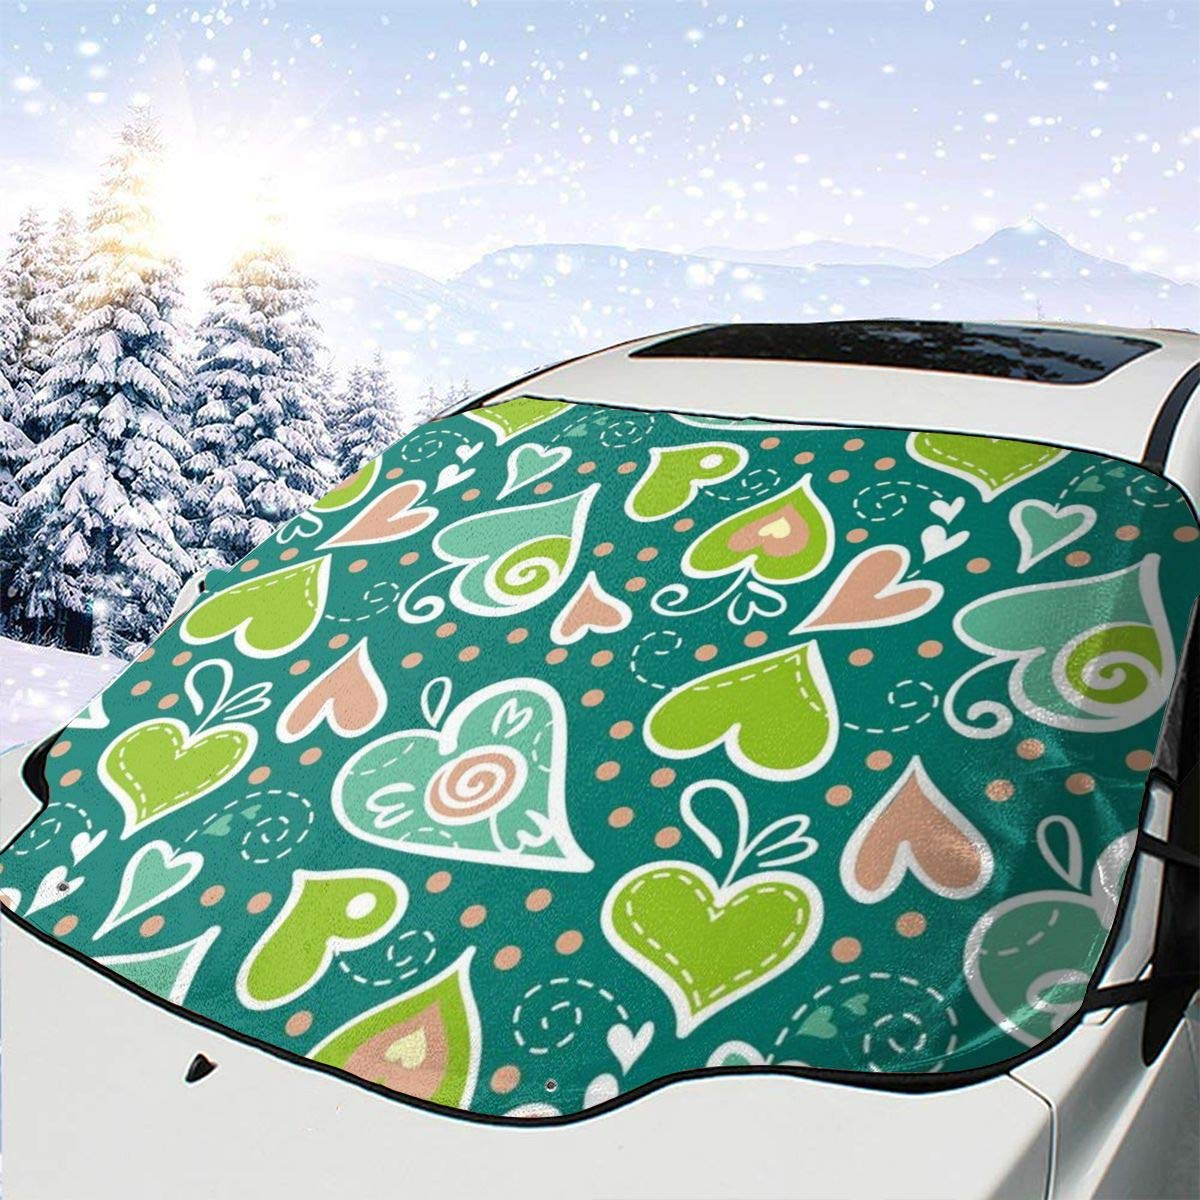 Car San Francisco Mall Front Window Windshield Snow Image Max 68% OFF Cover wi Inspired Nature